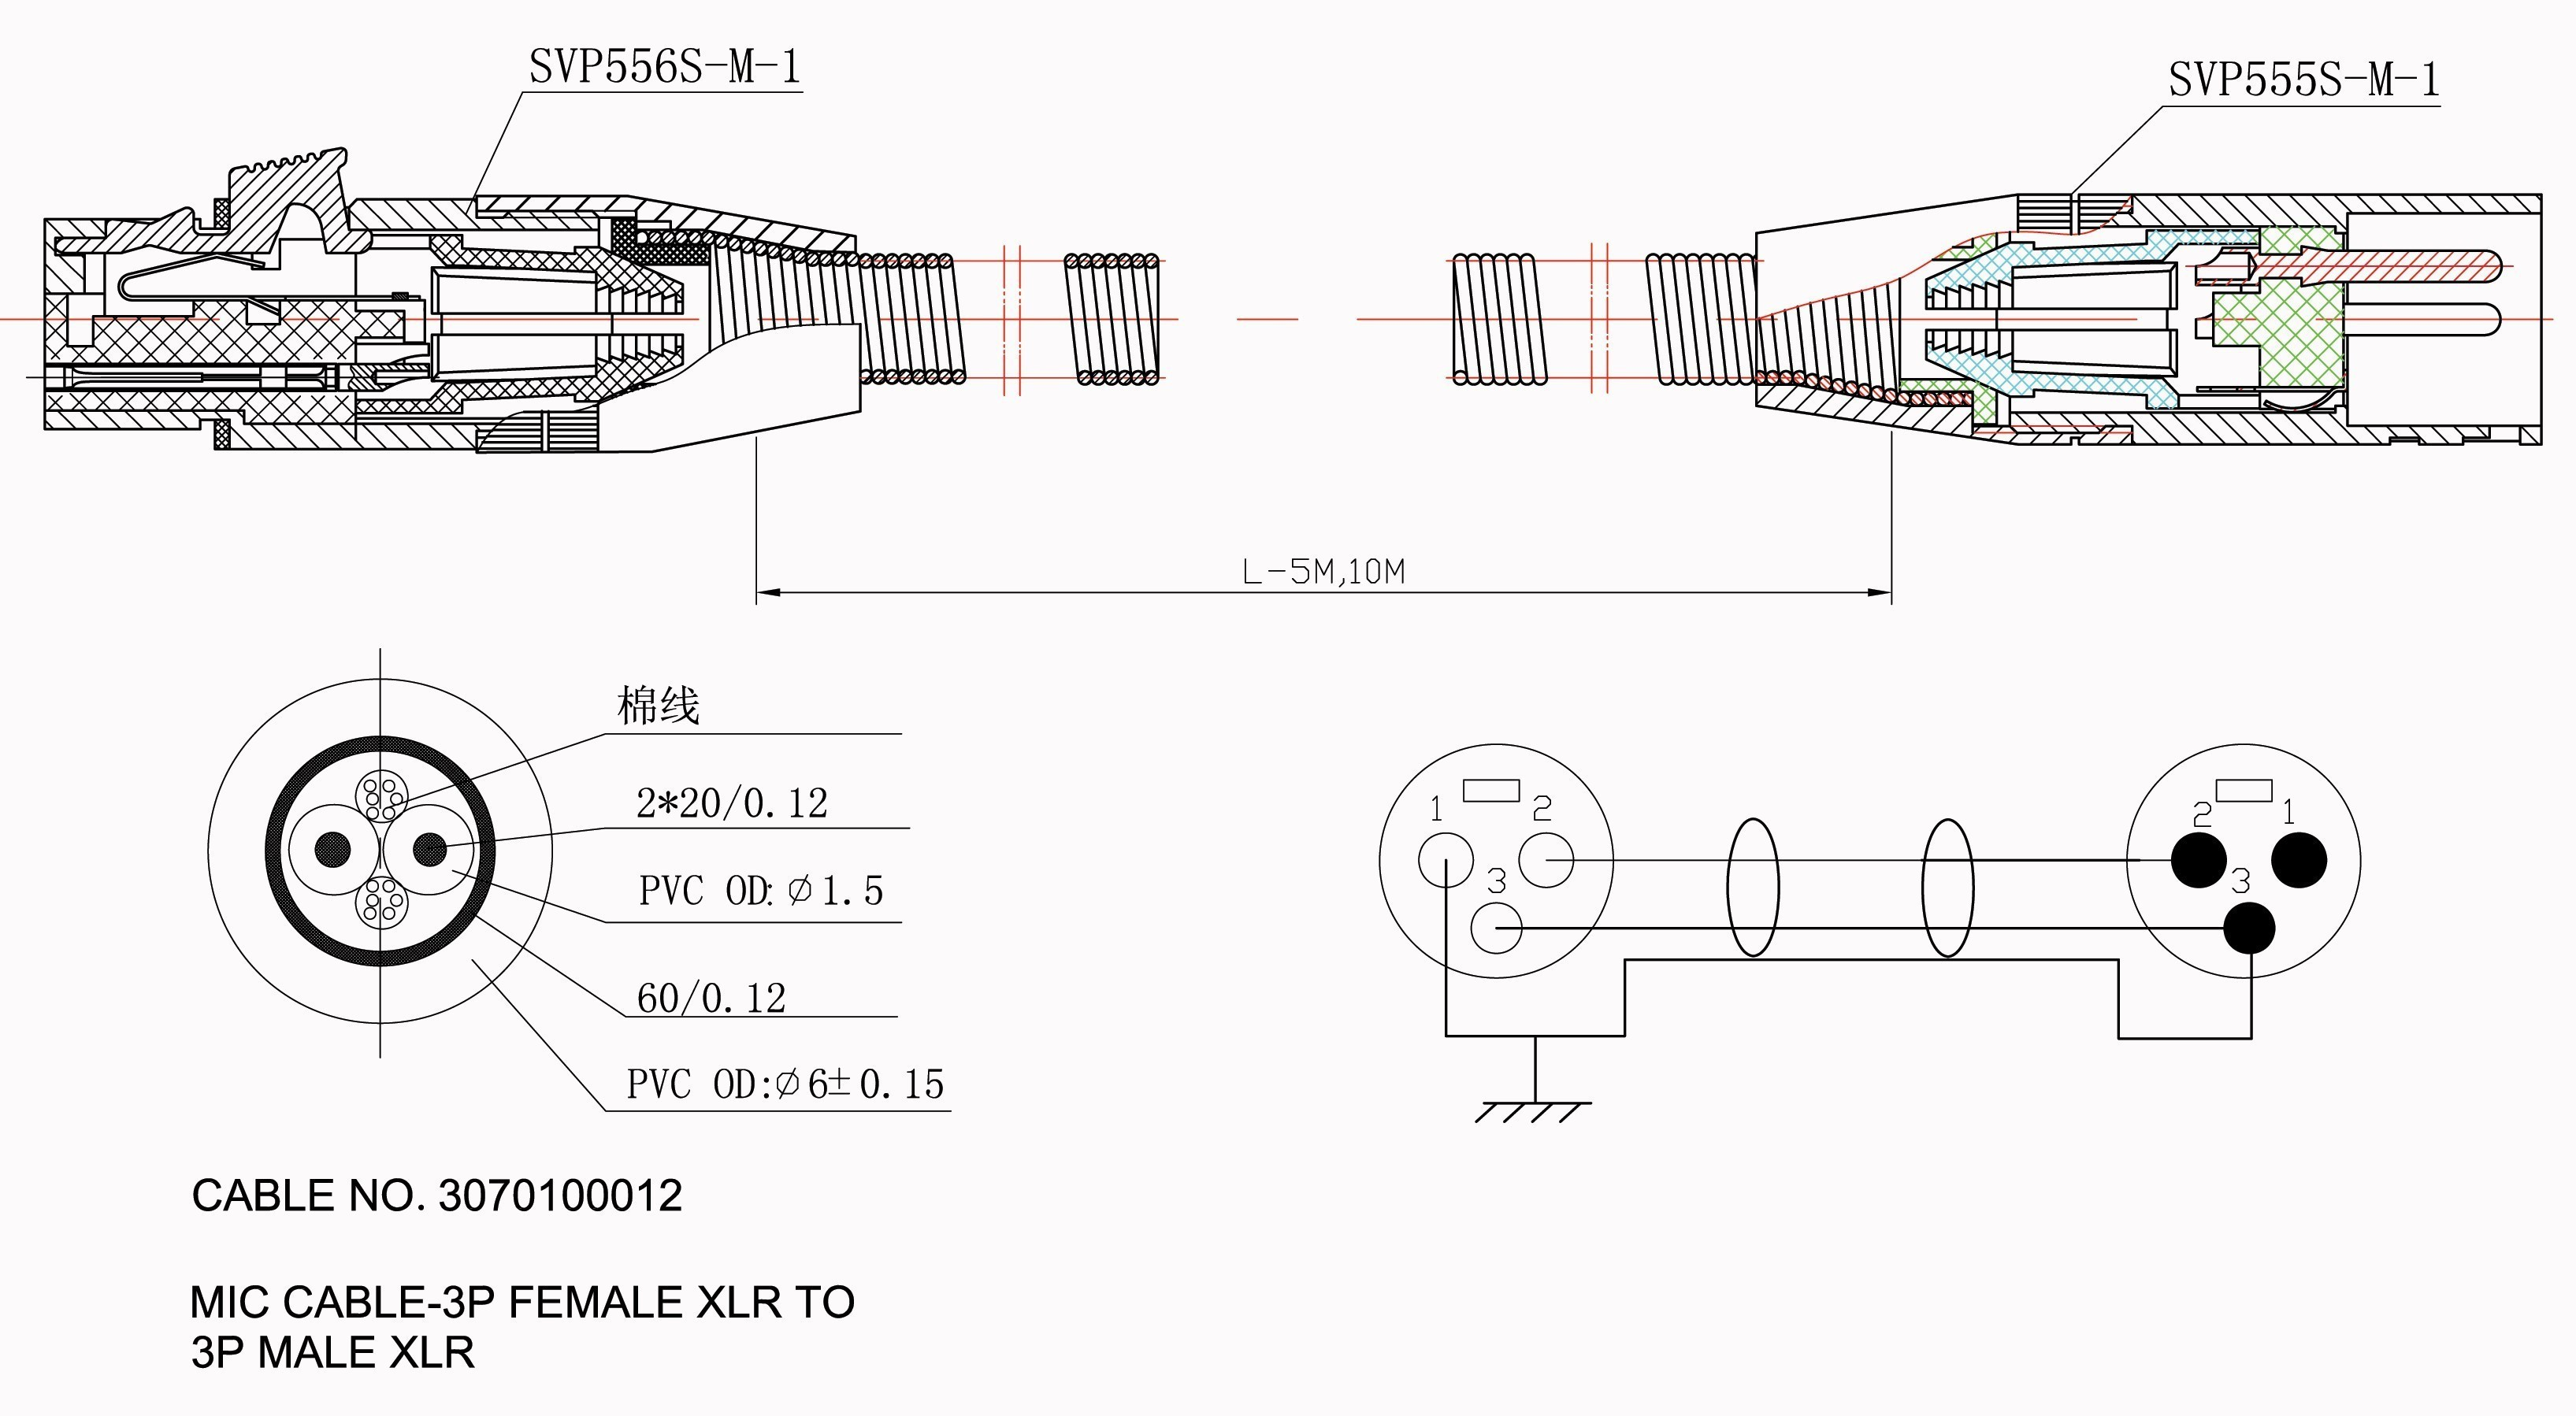 2003 Land Rover Discovery Engine Diagram Land Rover Ac Wiring Diagrams Worksheet and Wiring Diagram • Of 2003 Land Rover Discovery Engine Diagram